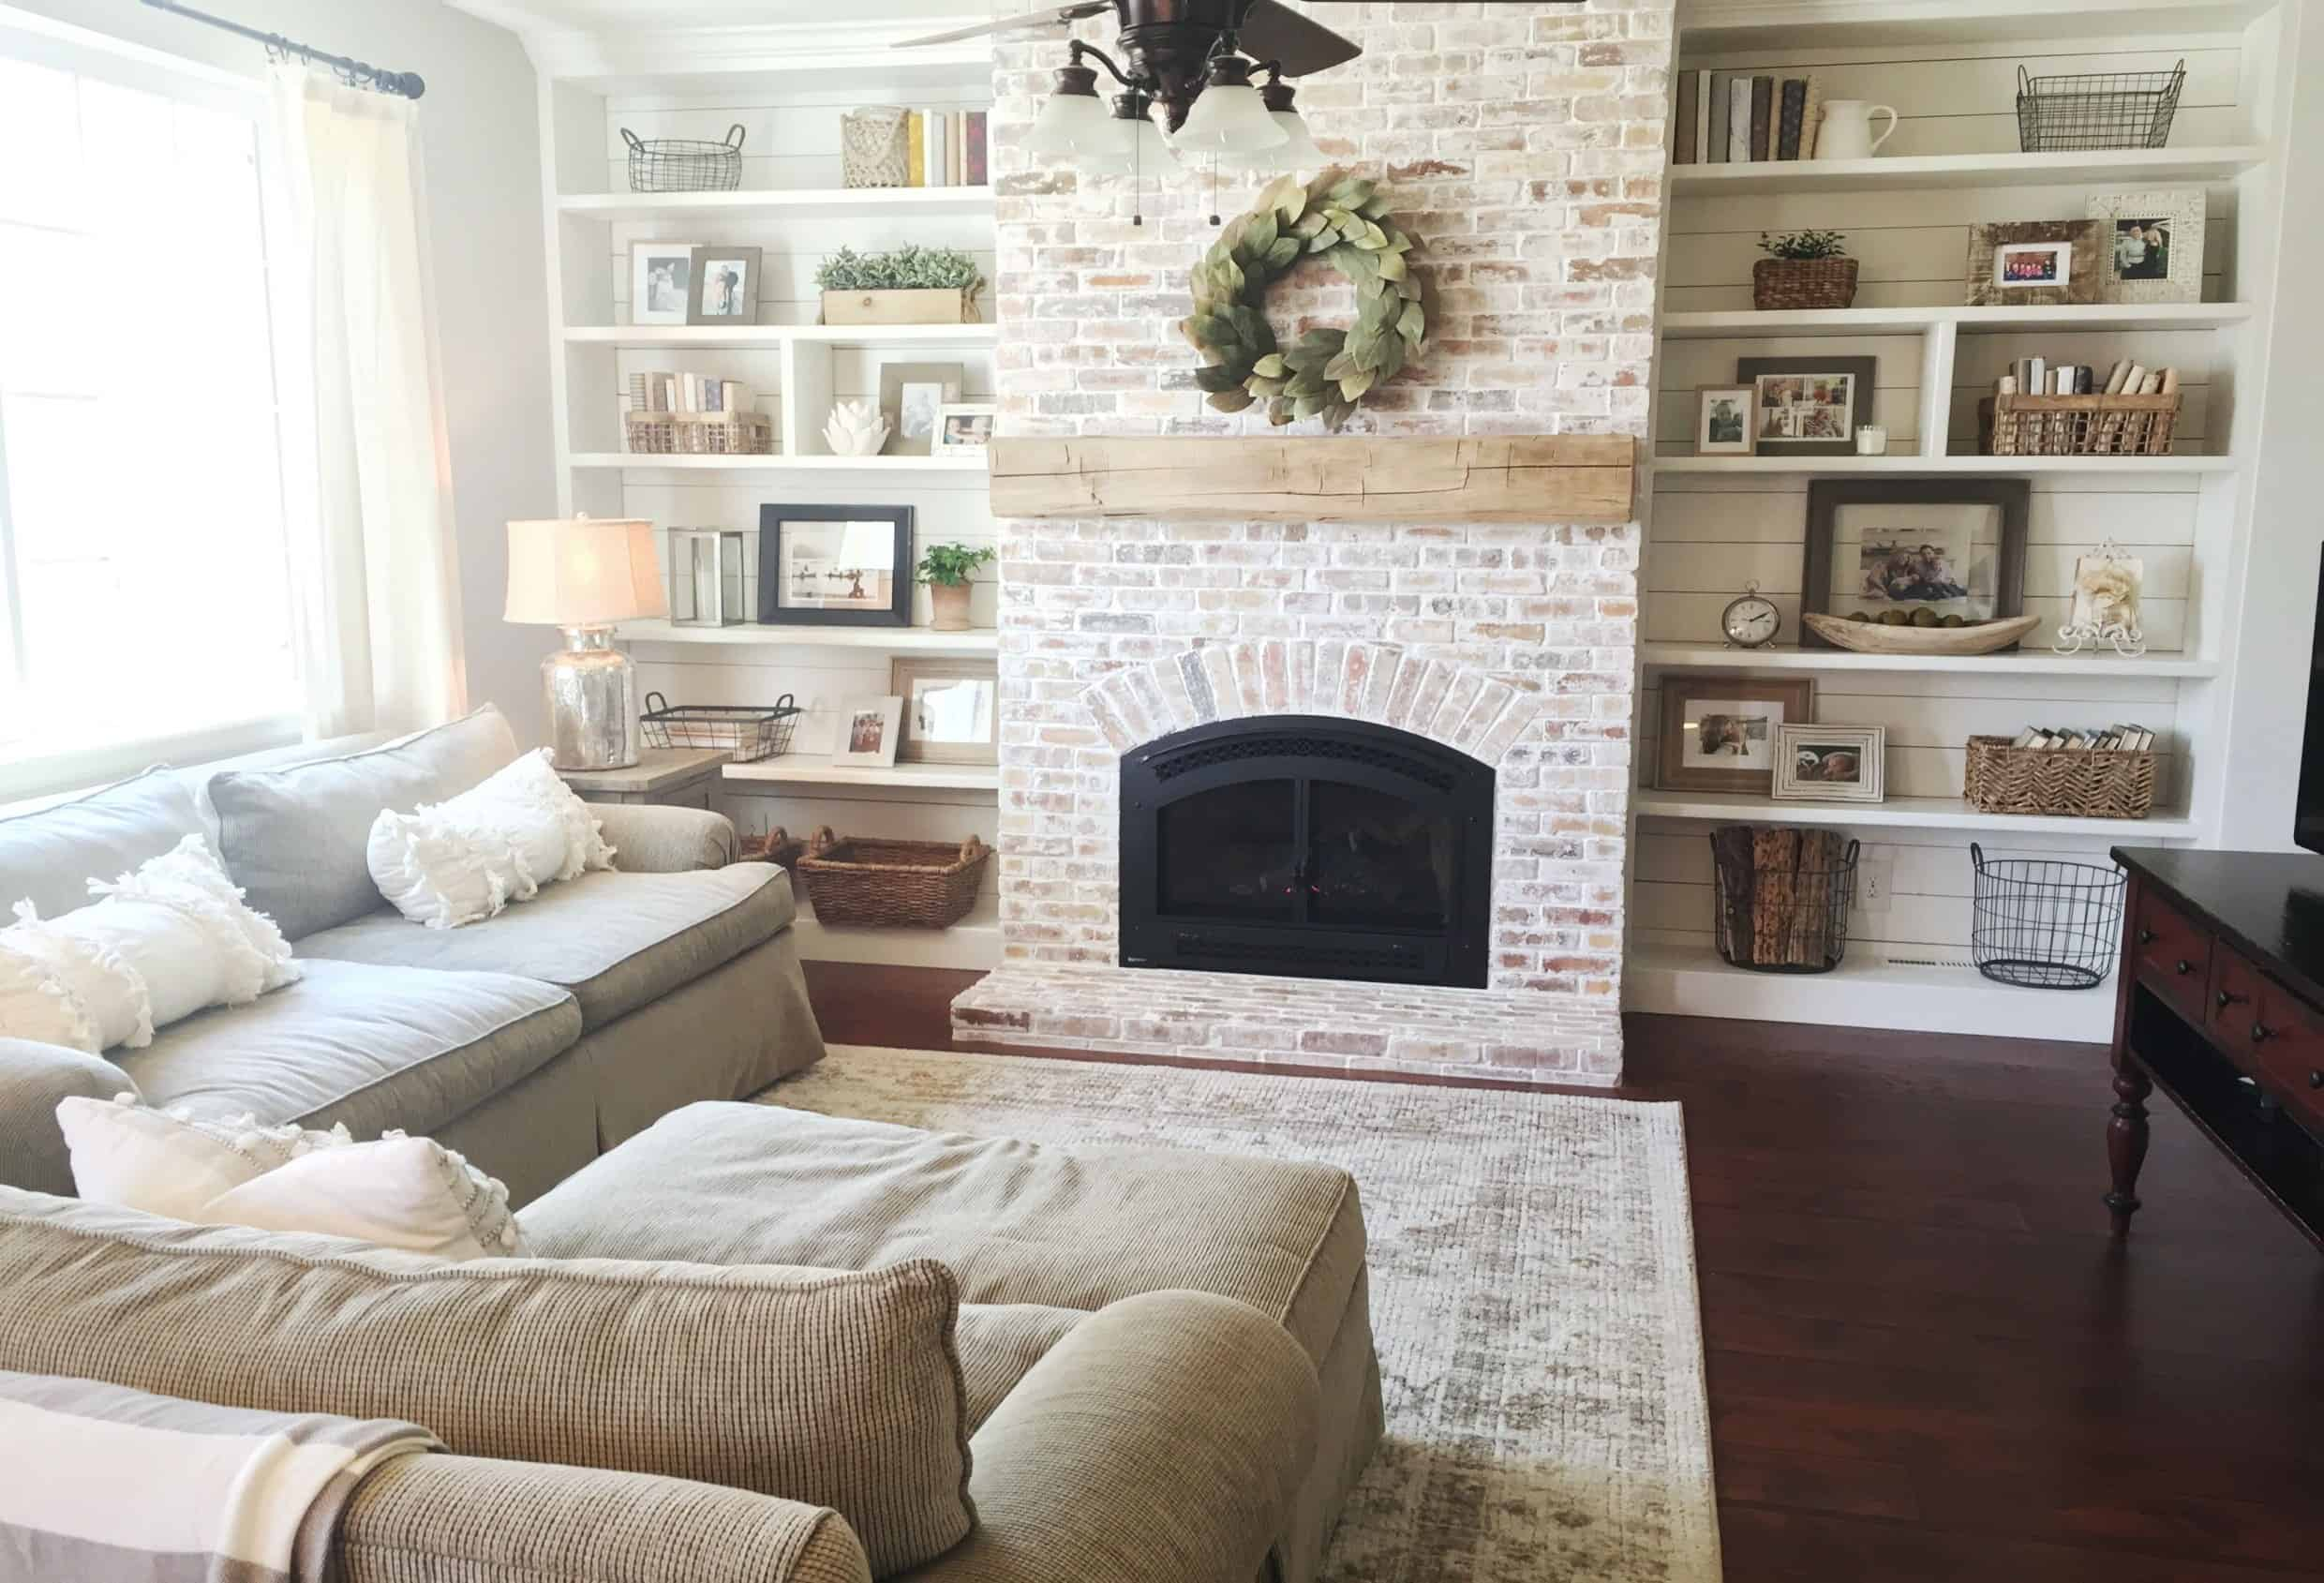 fake fireplace ideas Built ins shiplap whitewash brick fireplace bookshelf styling